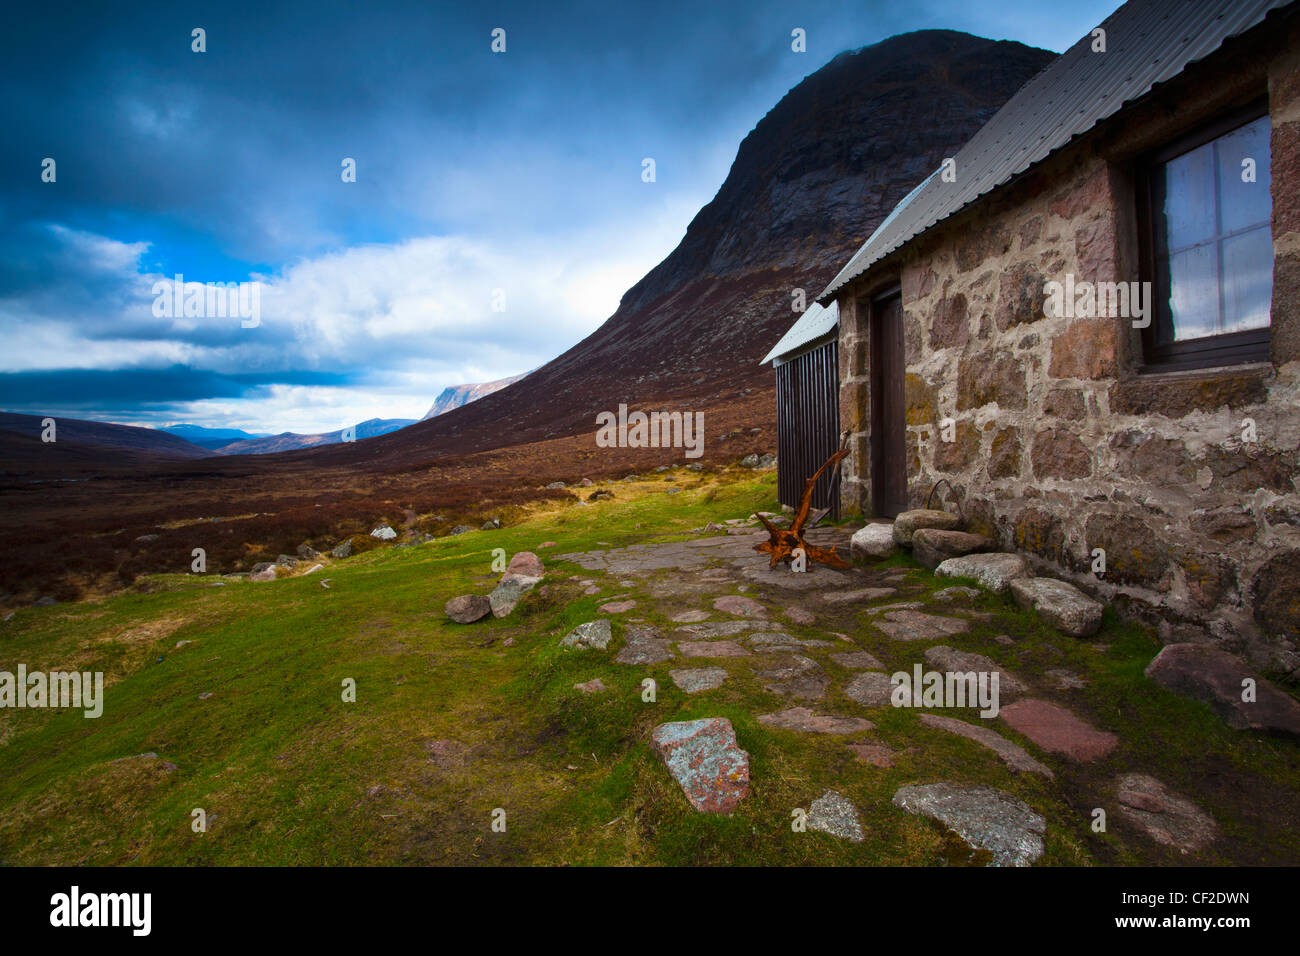 A storm approaches the Corrour Bothy, located along the infamous Lairig Ghru in the Cairngorms National Park. - Stock Image